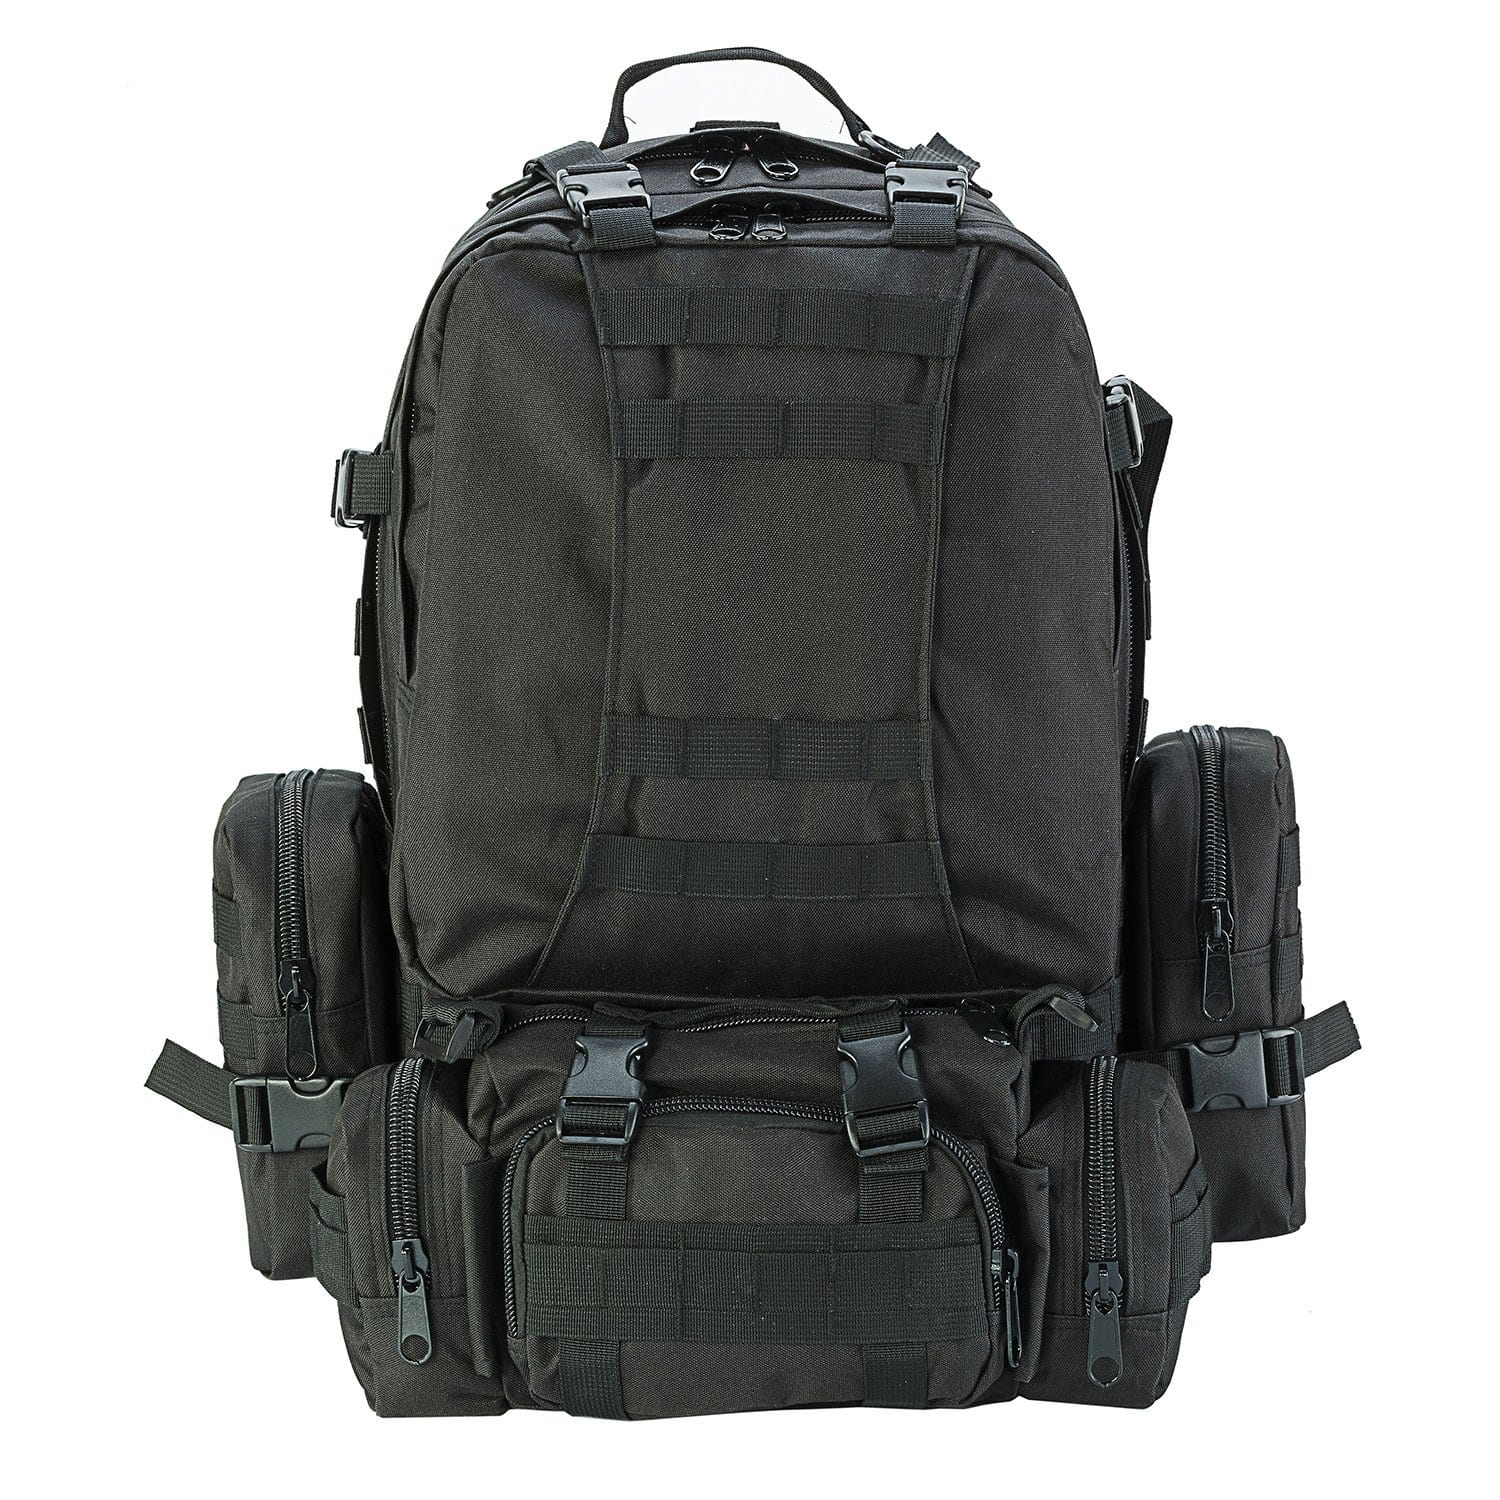 Outdoor 50L Military Rucksacks Tactical Backpack Assault Pack from $27.99